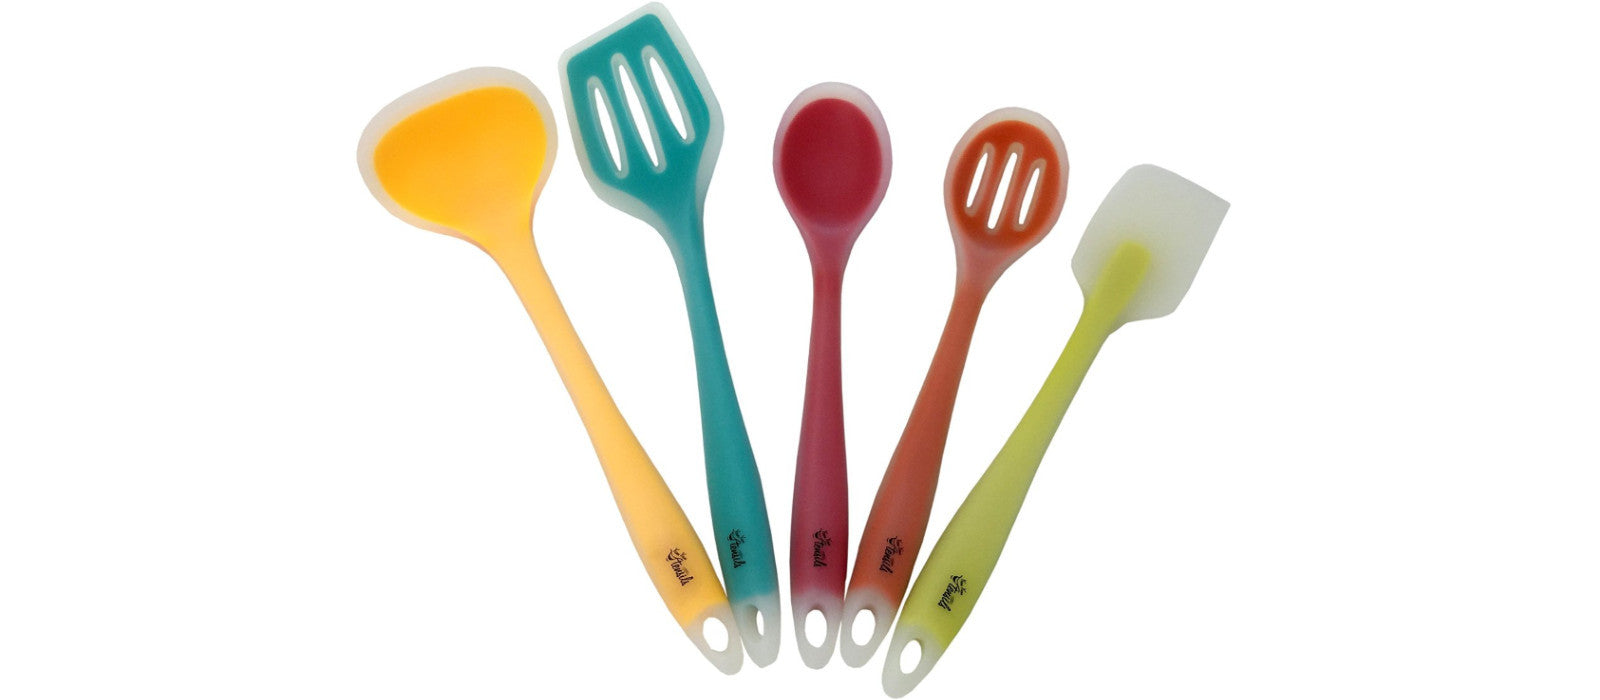 YumYum Utensils Premium Silicone Utensil Set